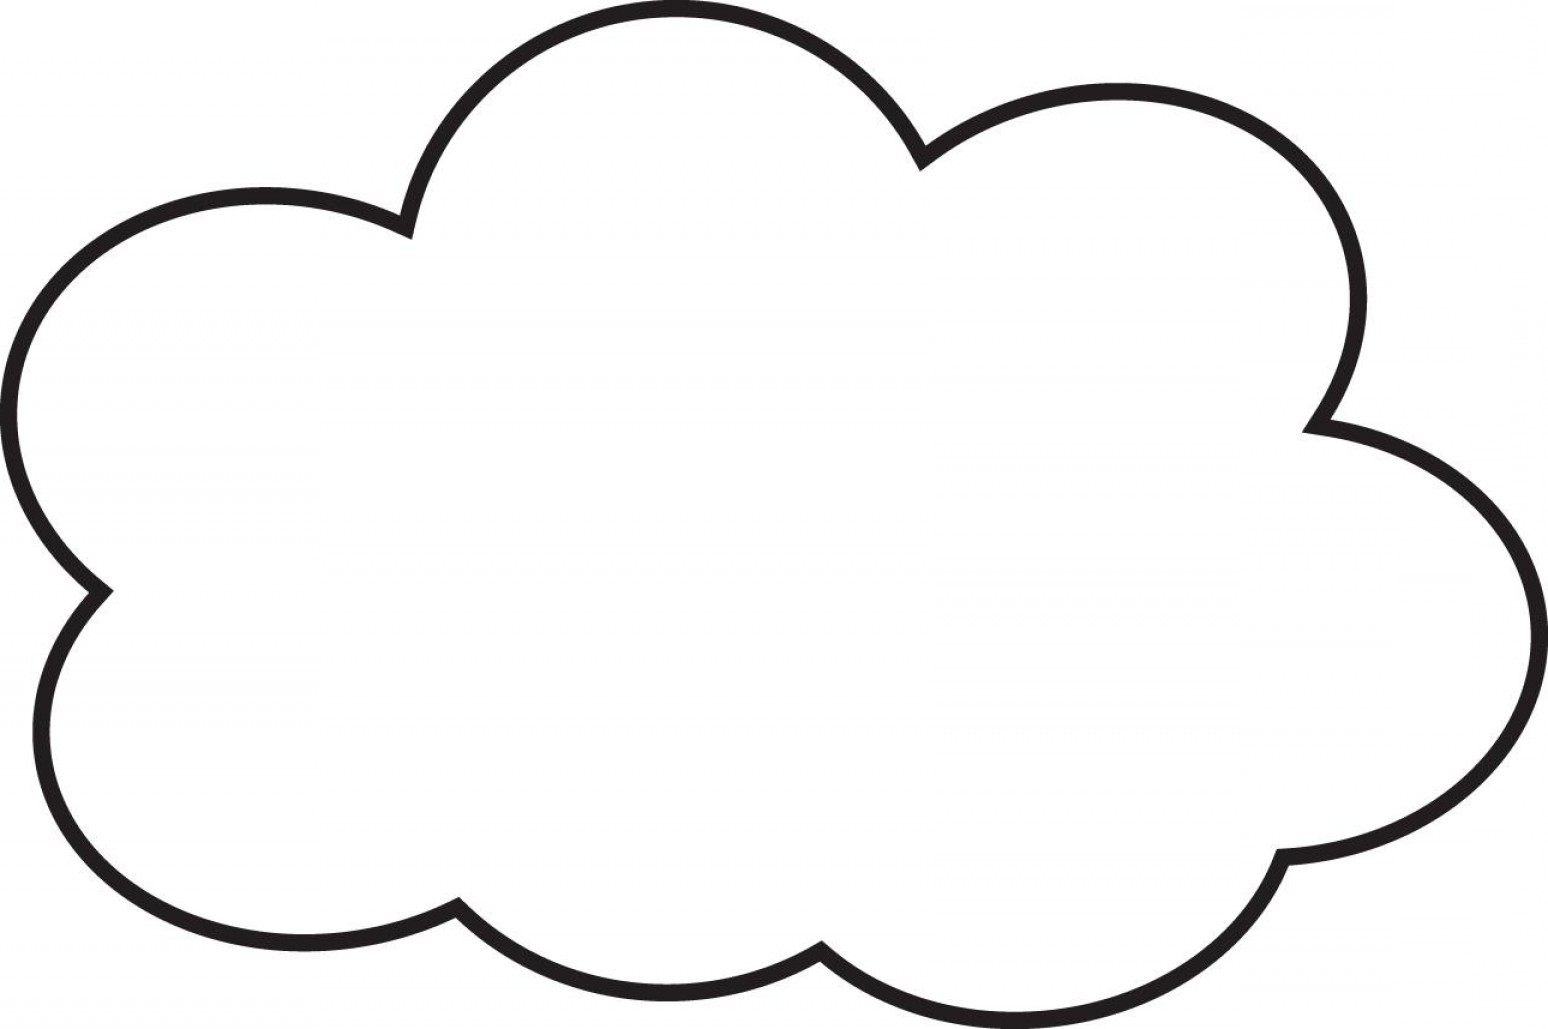 Cloud Outline Vector Black And White: Amazing Chic Cloud Outline Top Clip Art Rain Clouds Clipart Free File Outliner Image Printable Vector Tattoo Emoji